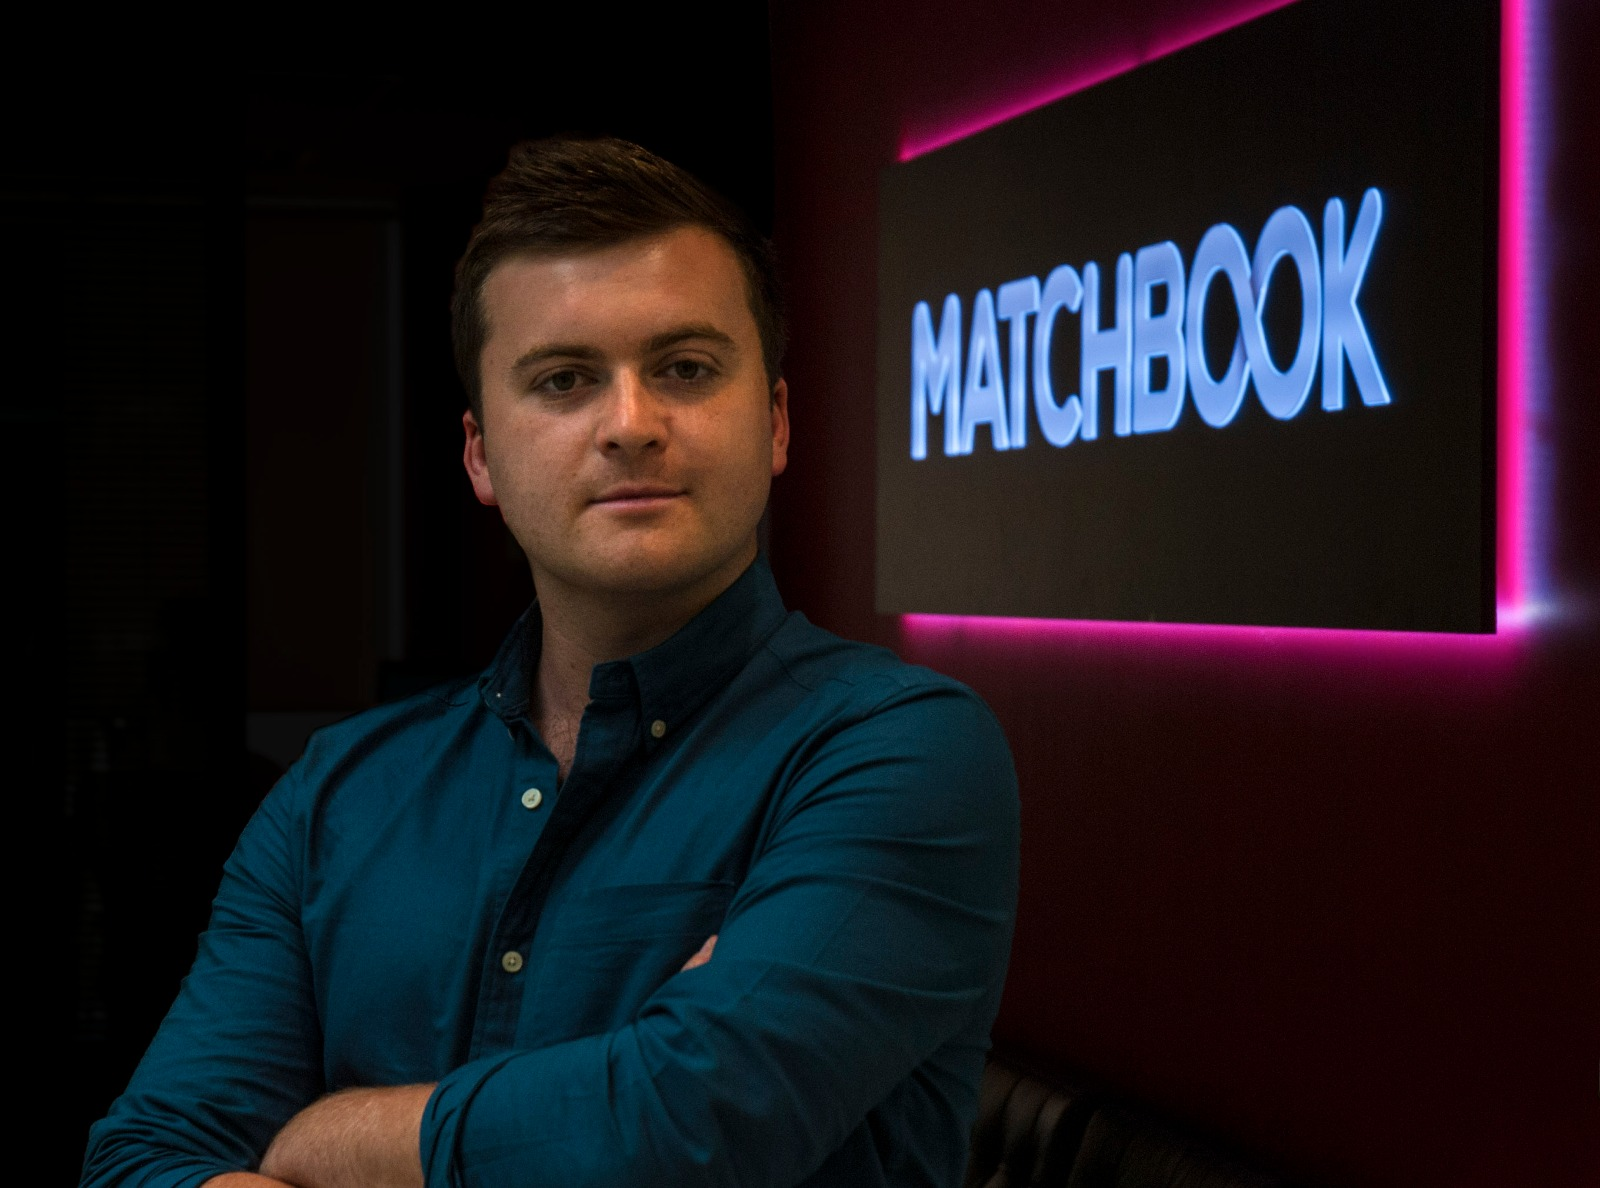 Matchbook Betting Podcast unveils three new hosts